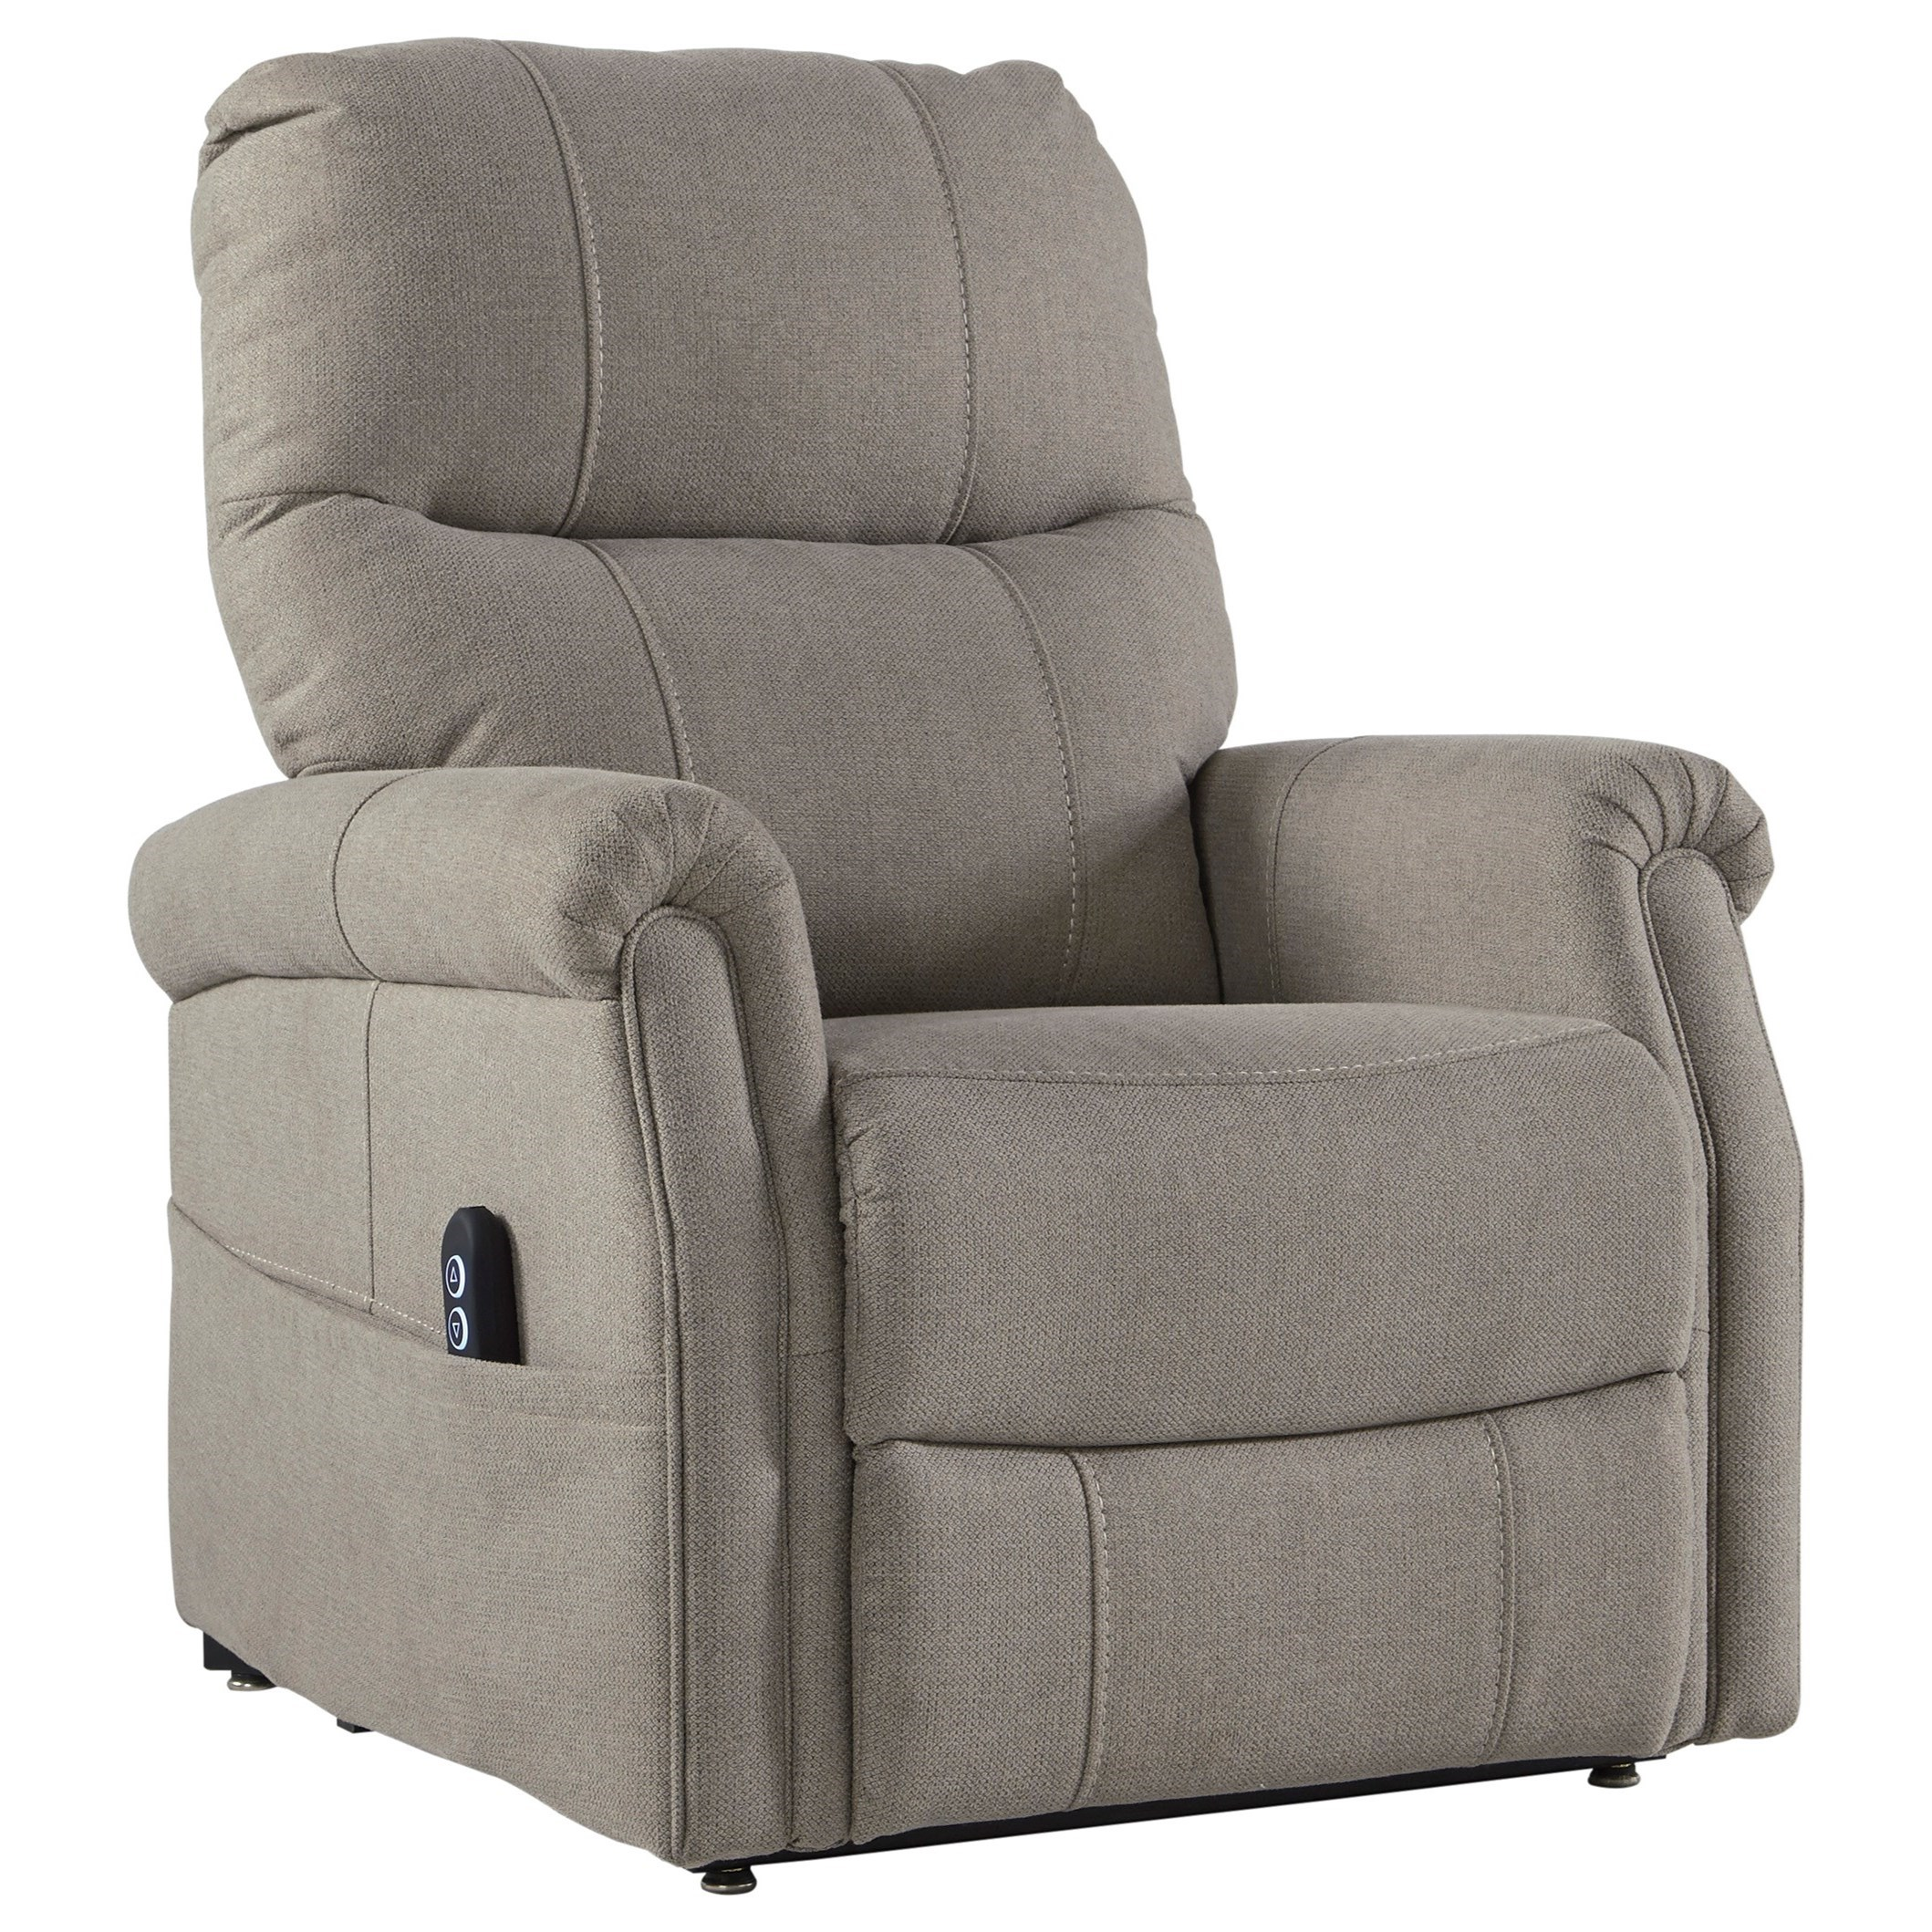 Markridge Power Lift Recliner by Signature Design by Ashley at Northeast Factory Direct